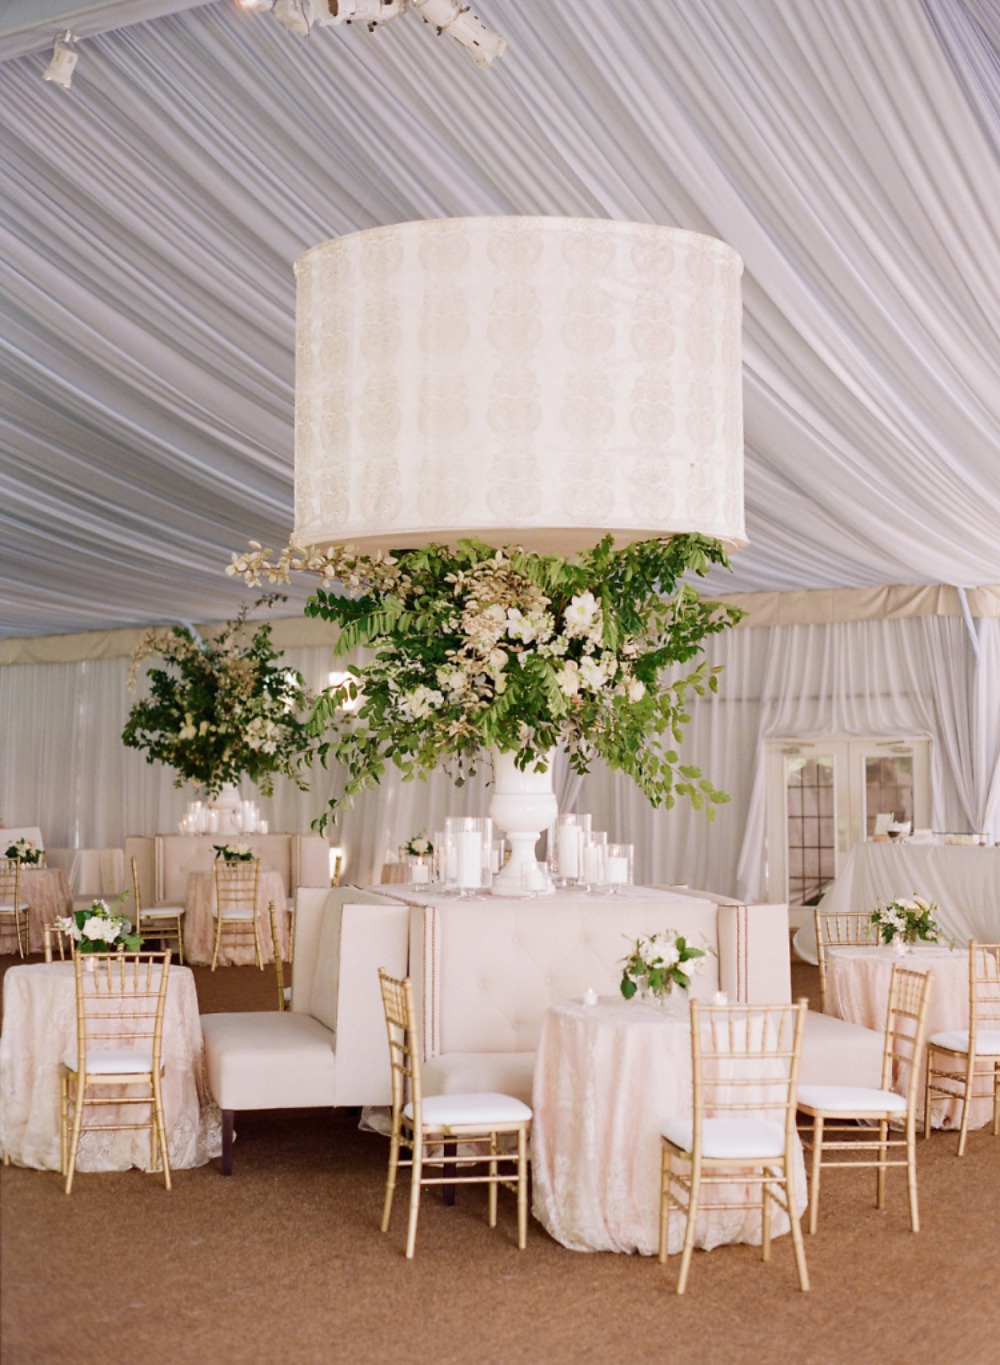 impressive southern style wedding seating and floral decor